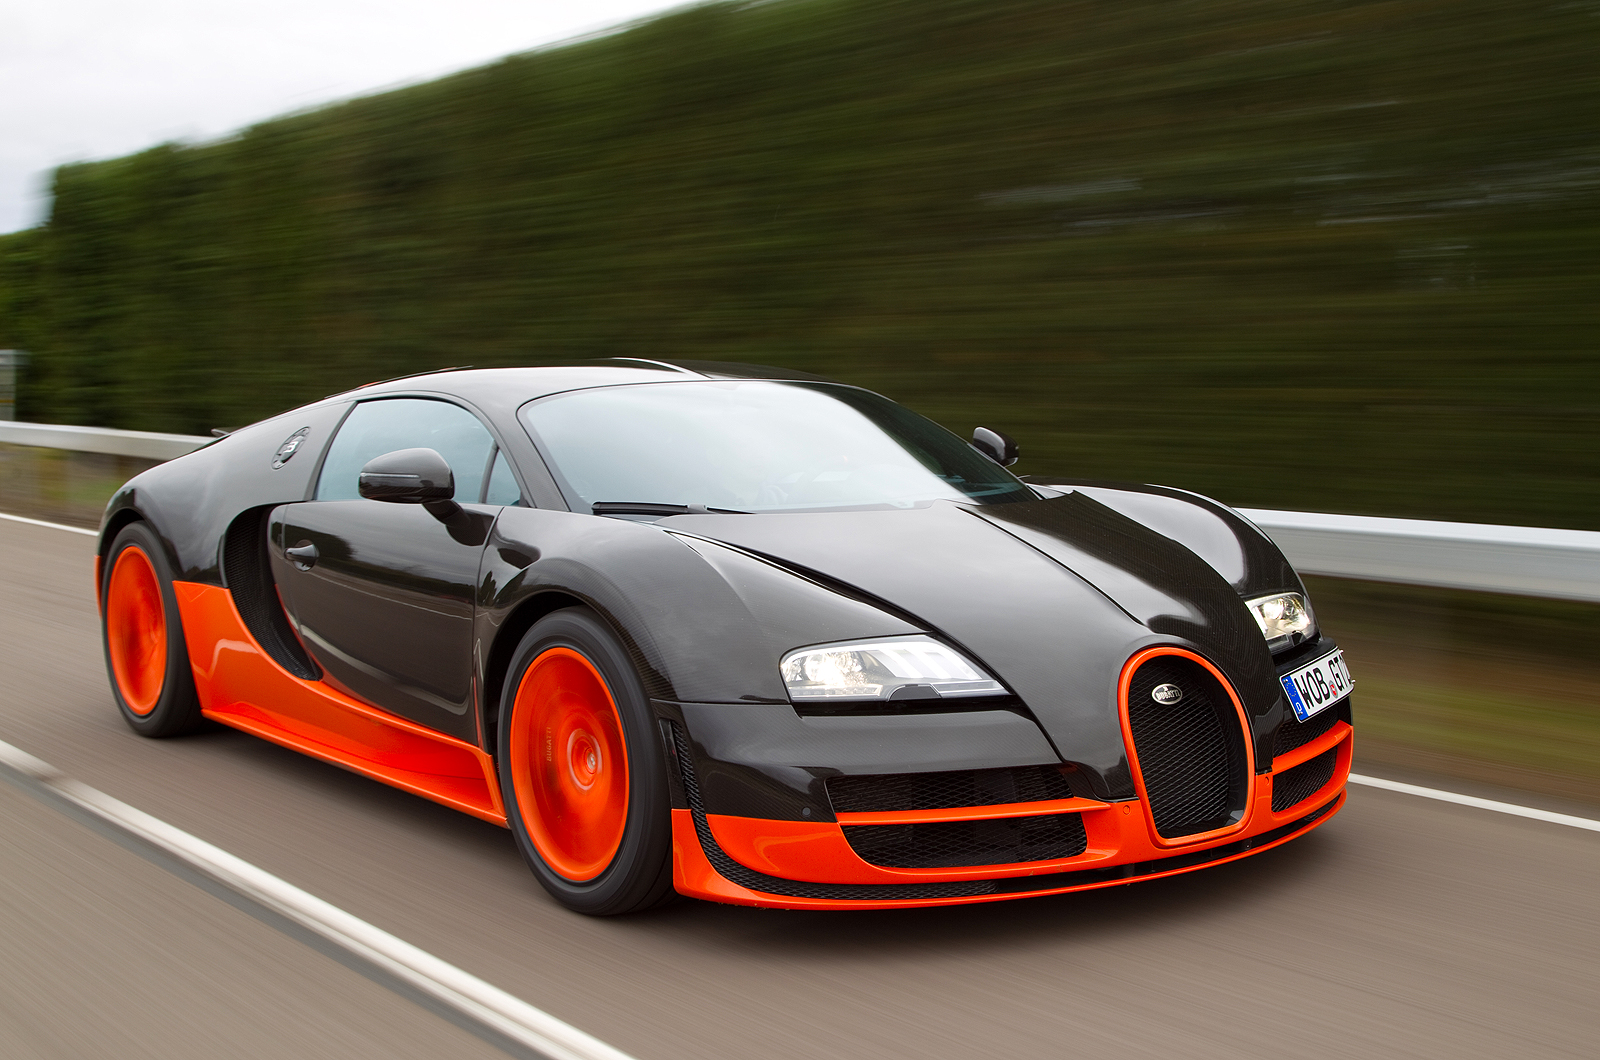 top 10 super fastest cars in the world - Coolest Cars In The World 2015